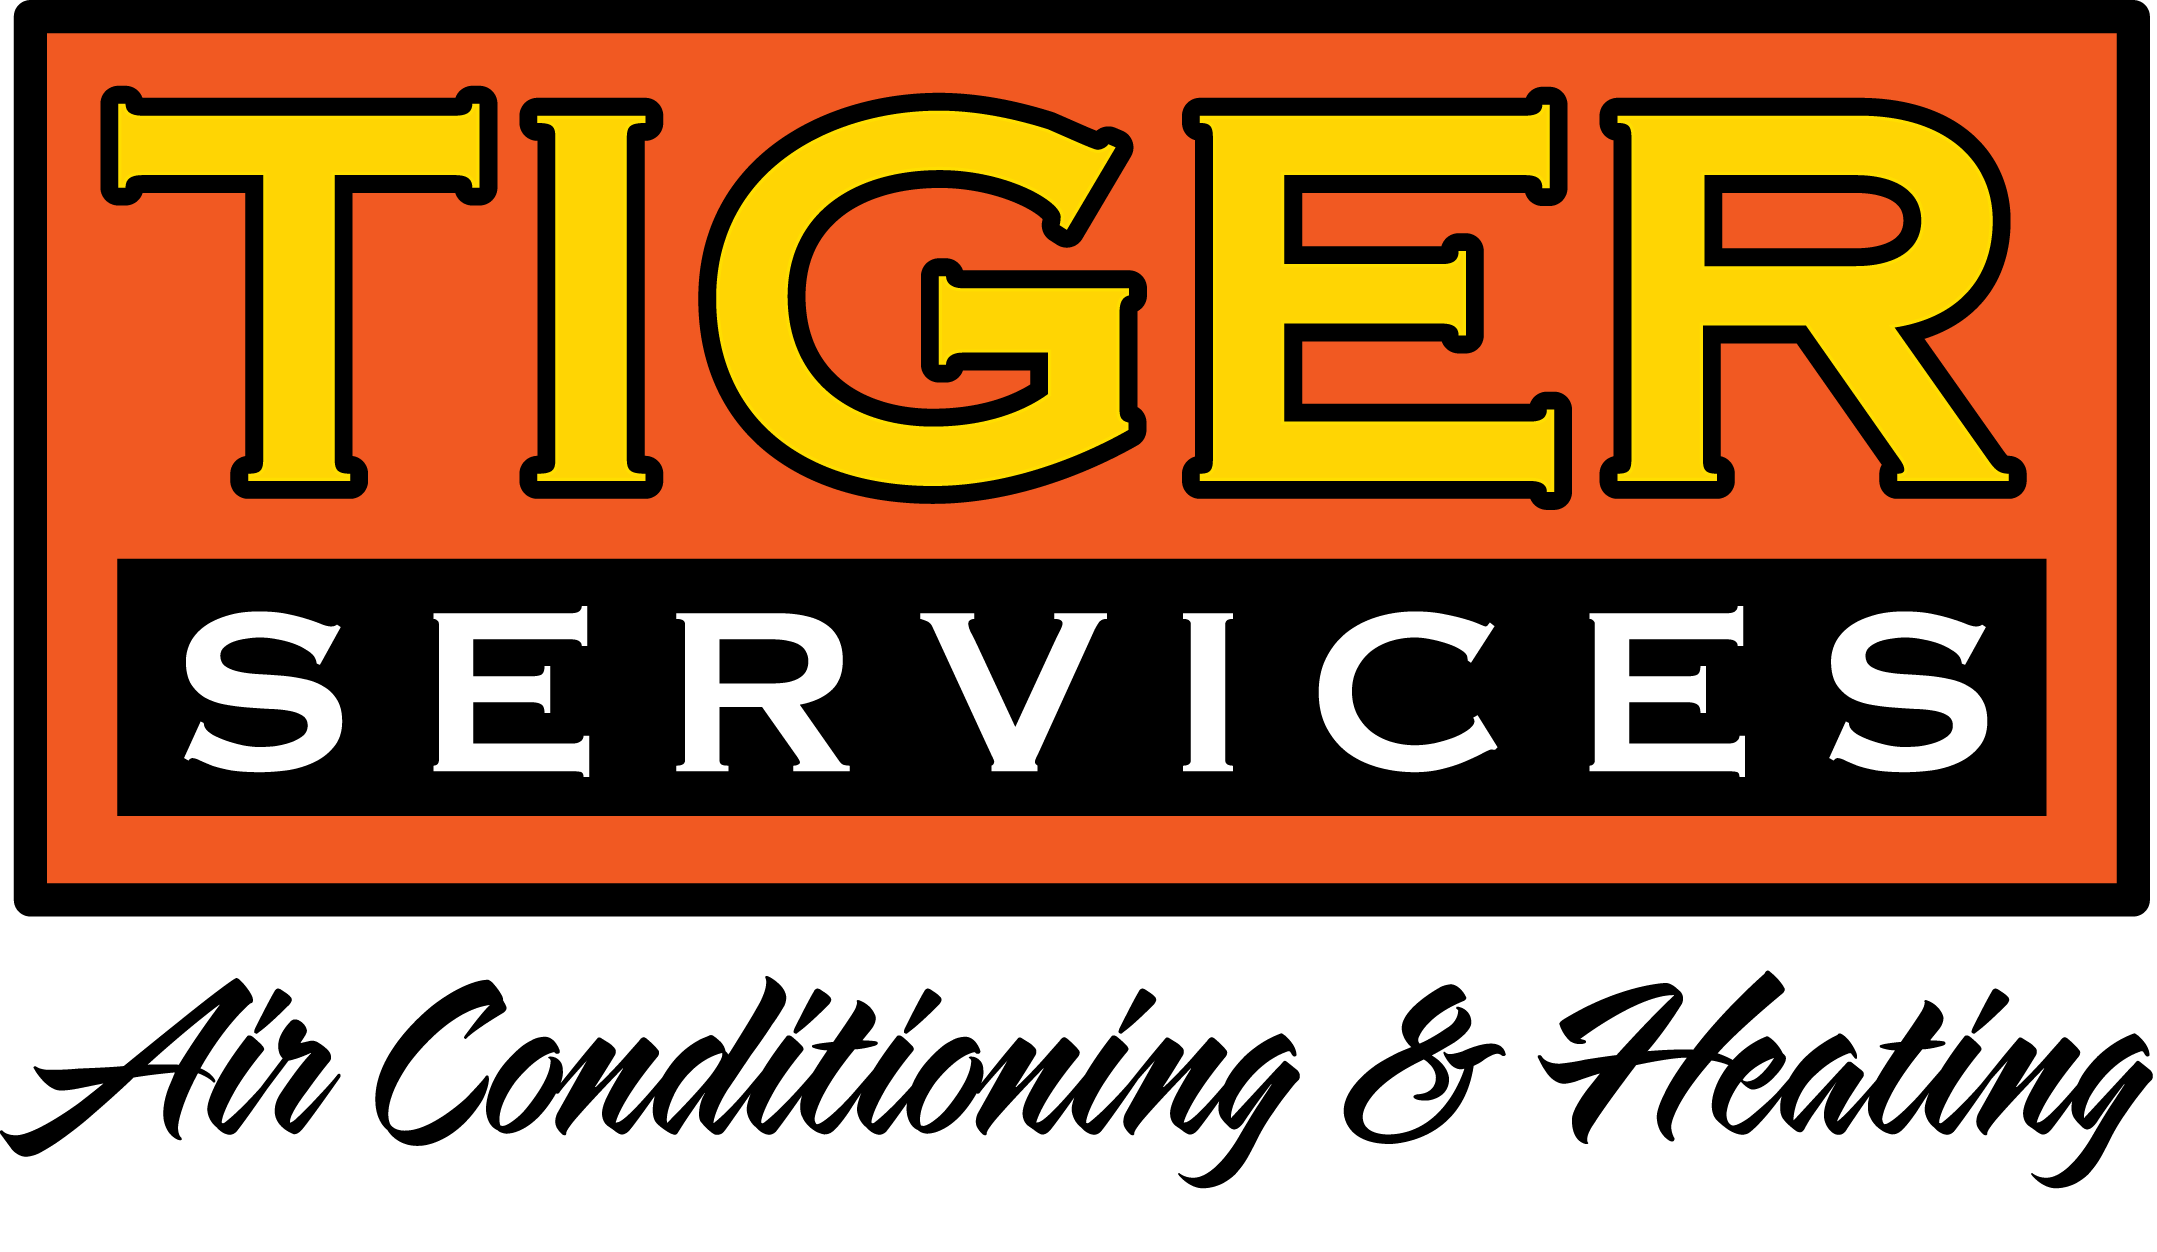 Tiger Services Air Conditioning & Heating logo